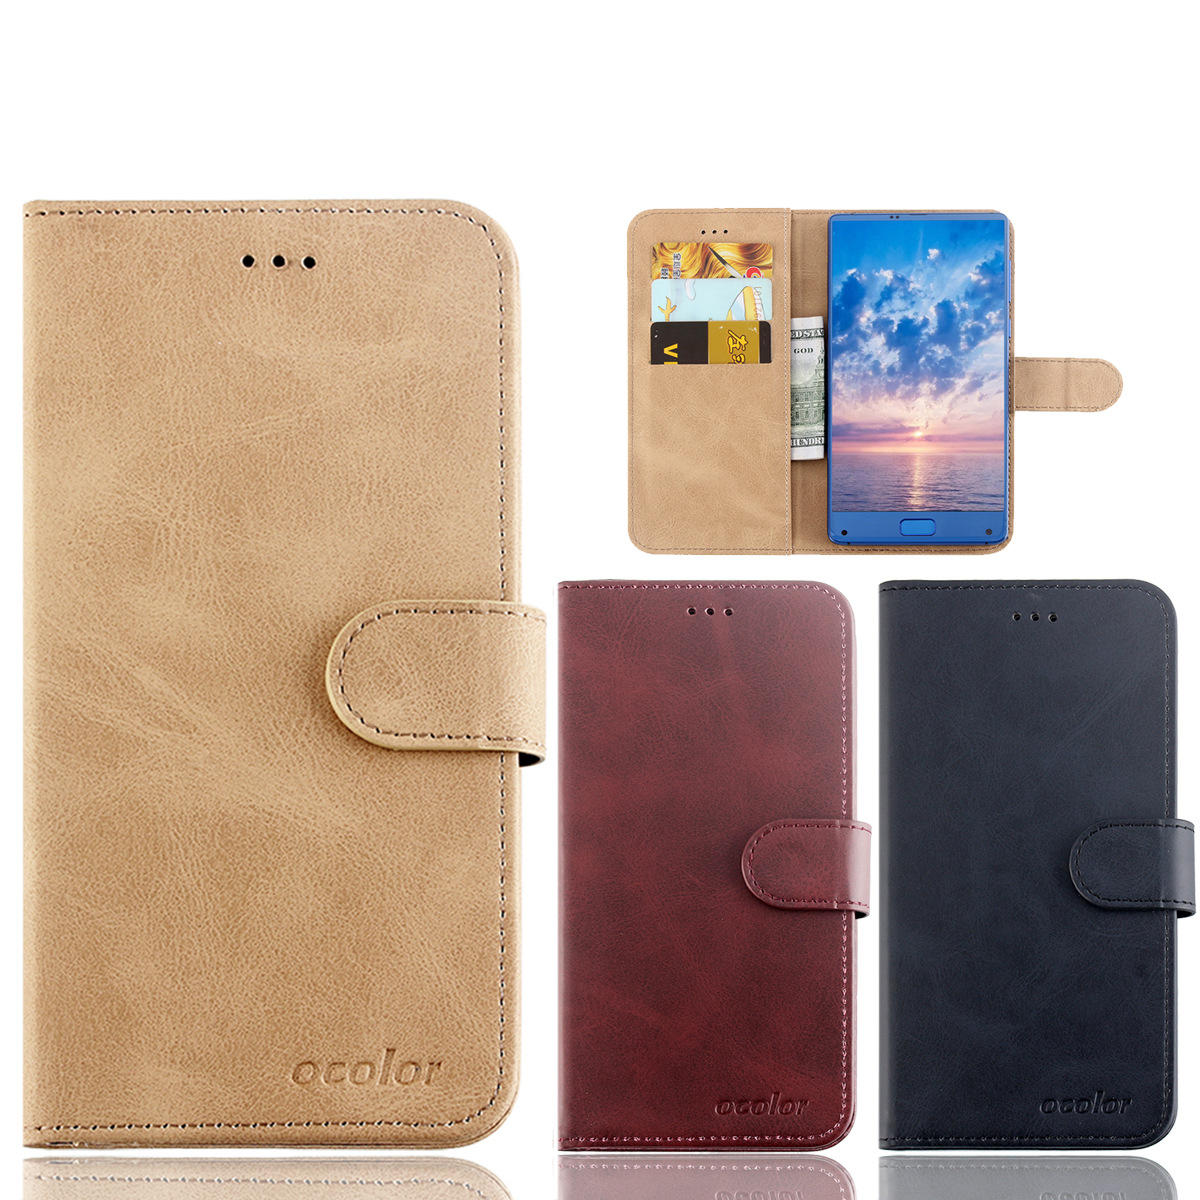 Bakeey Flip Magnetic Card Slot With Stand PU Leather Case Protective Case For UMIDIGI F1 / UMIDIGI F1 Play